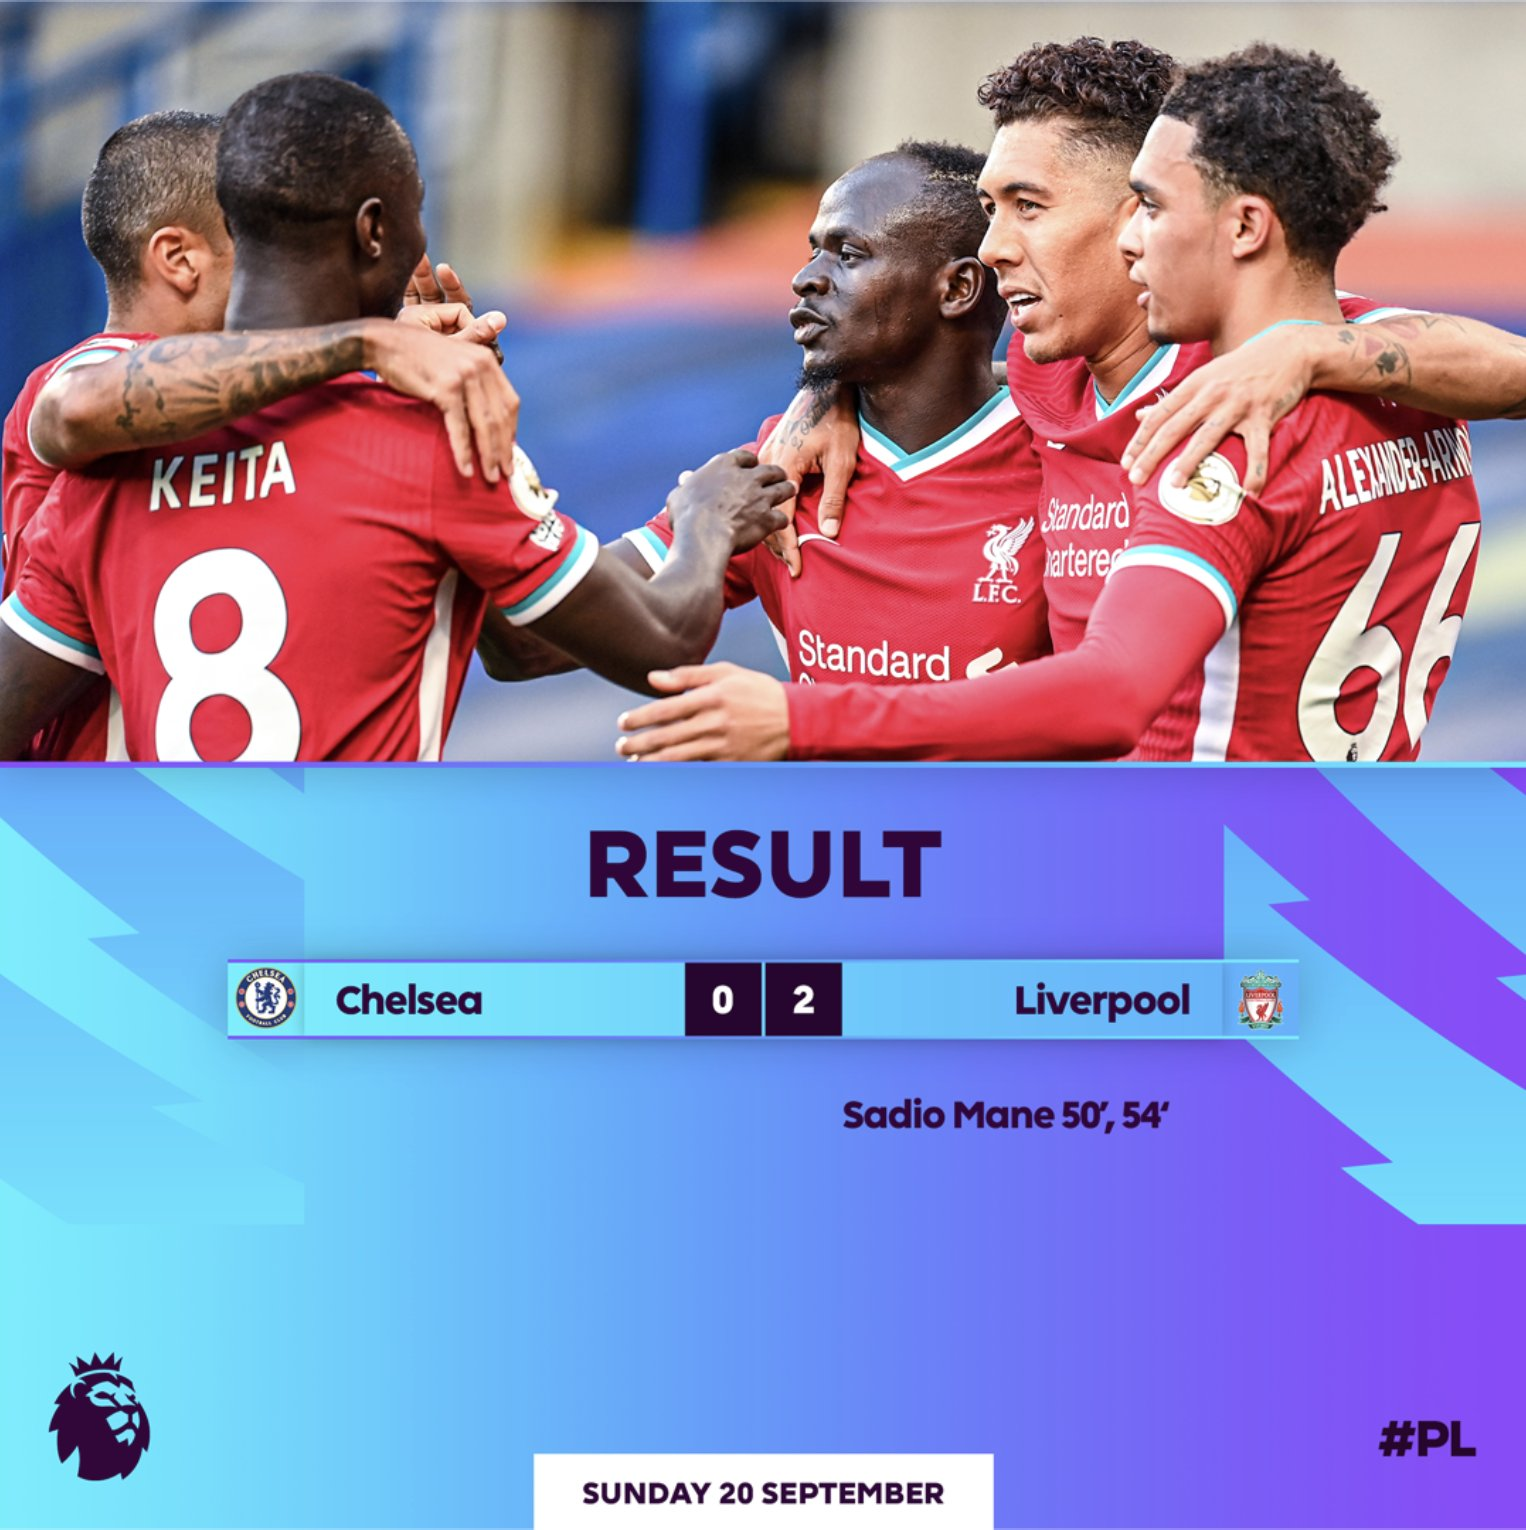 Chelsea 0-2 Liverpool Highlight Mp4 Download